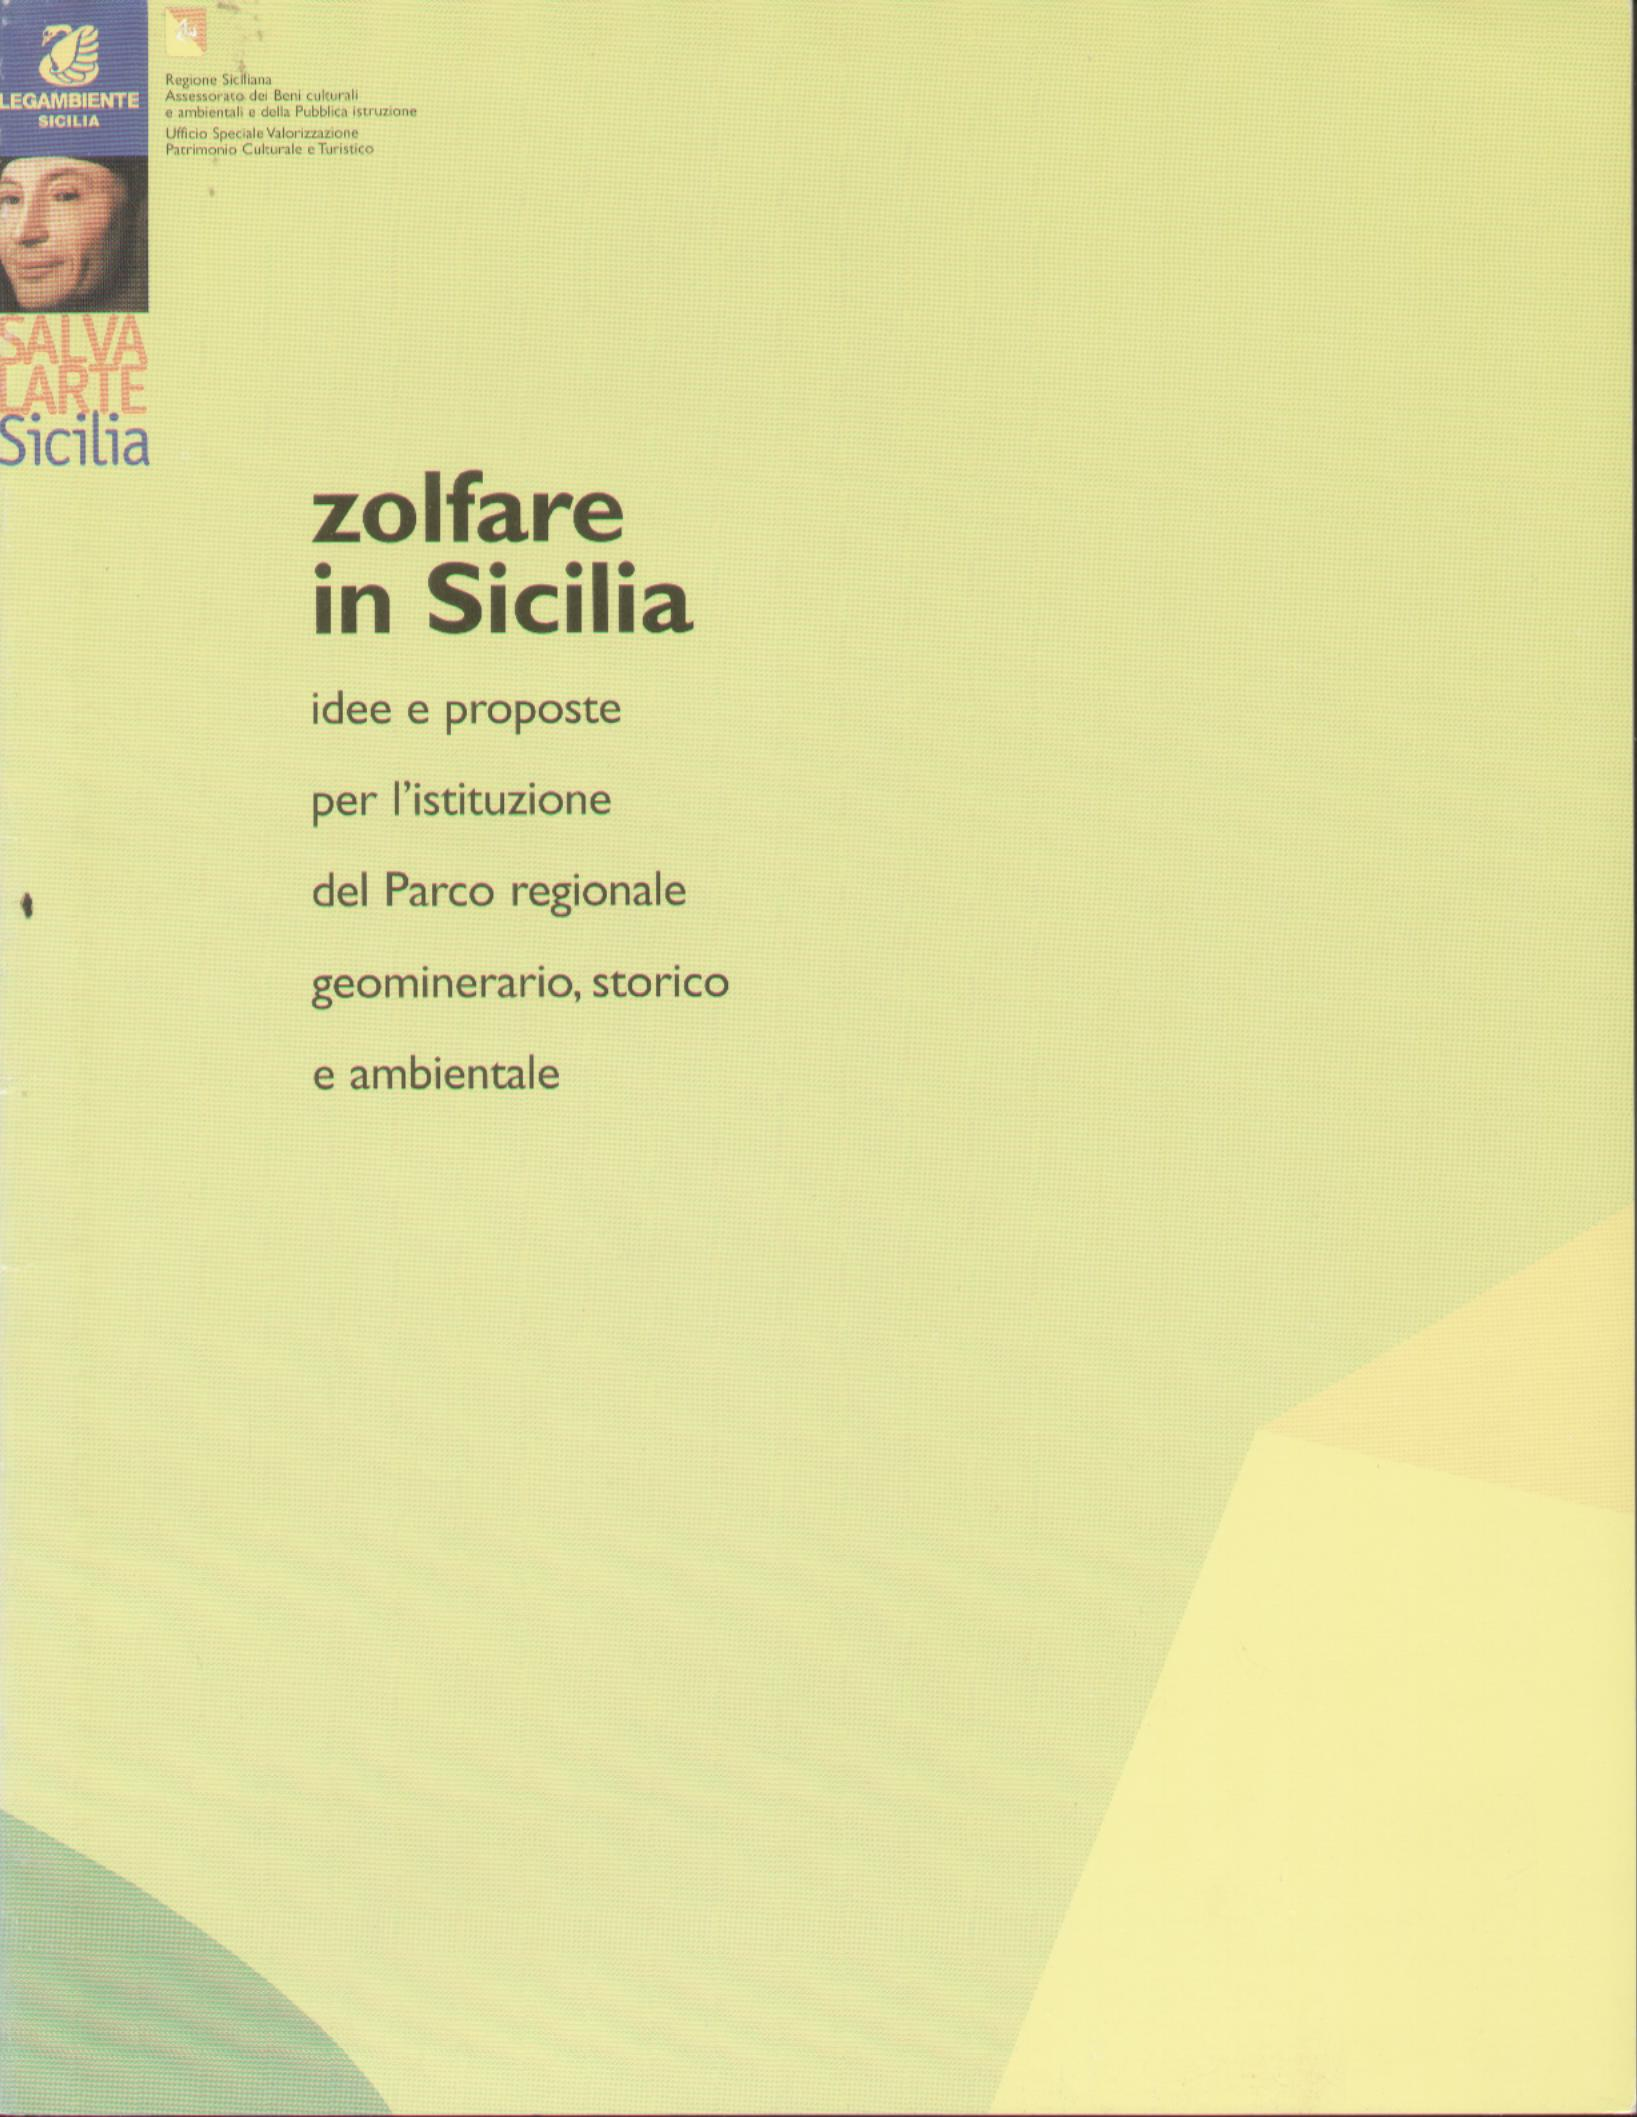 Zolfare in Sicilia